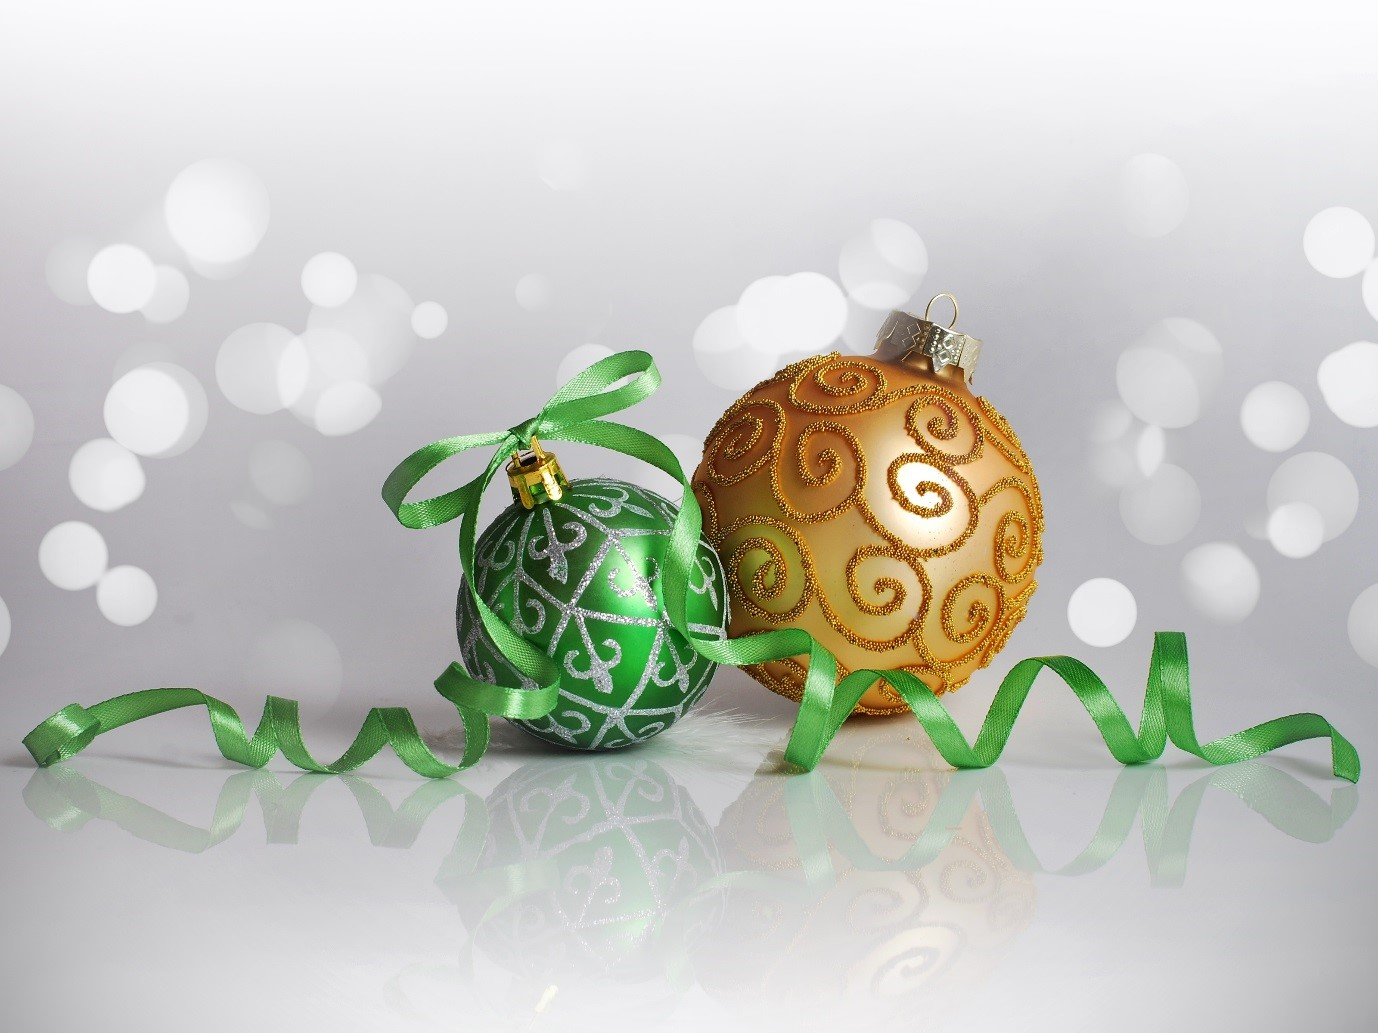 Have a merry Open Access Christmas!